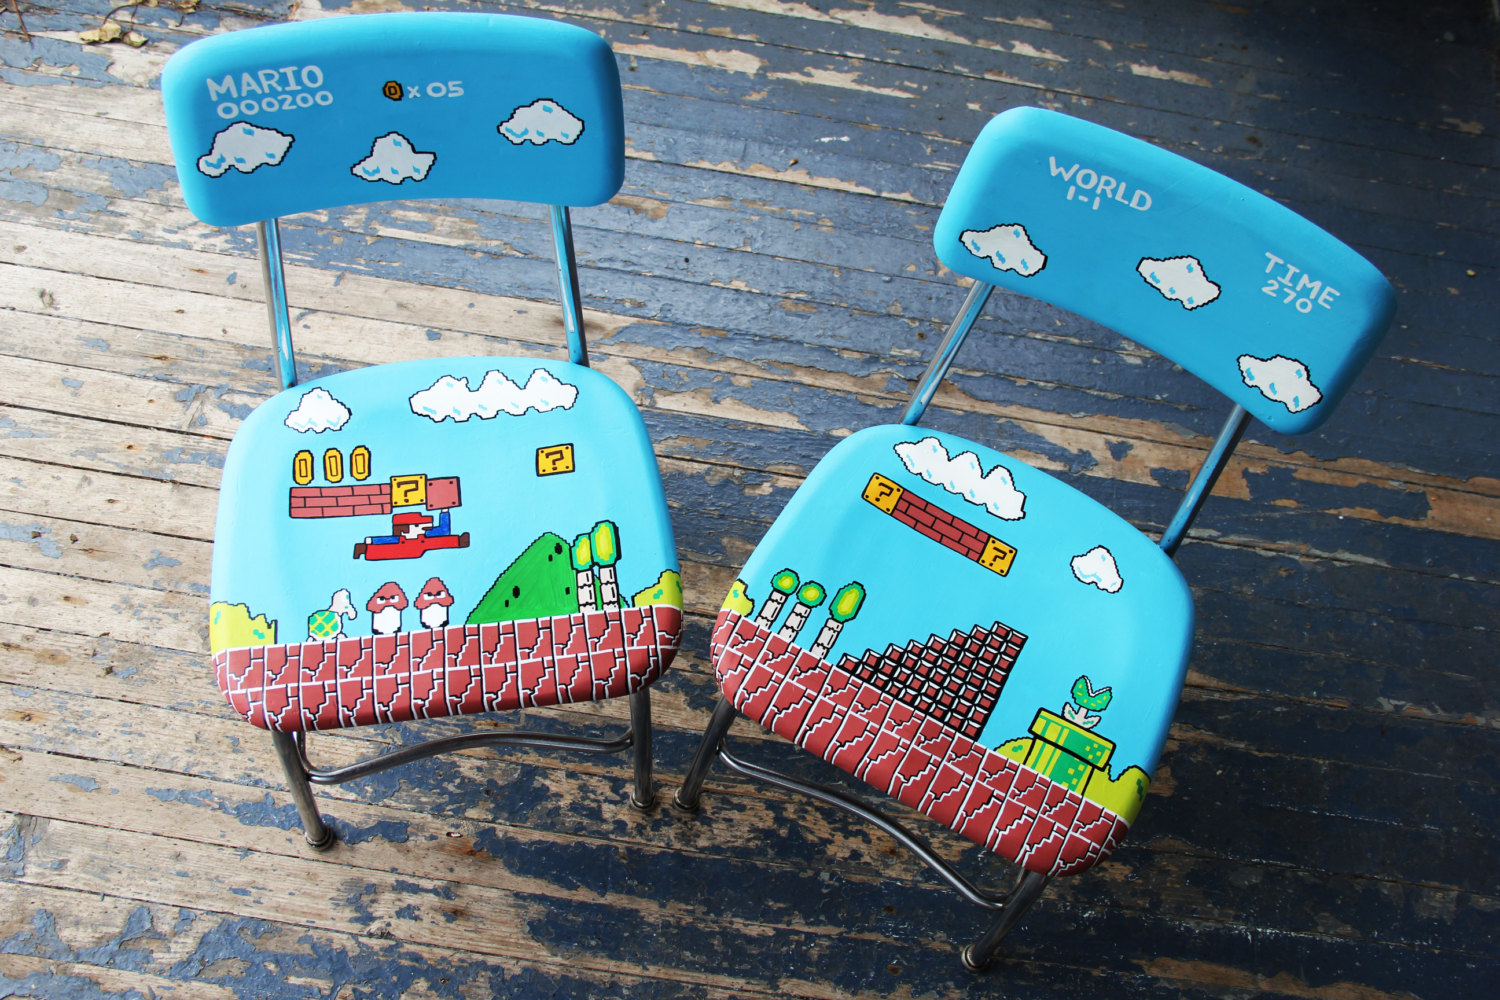 Just picture it now . . . you and a friend playing on a hand-painted Mario chair set. Doesn't get any better.